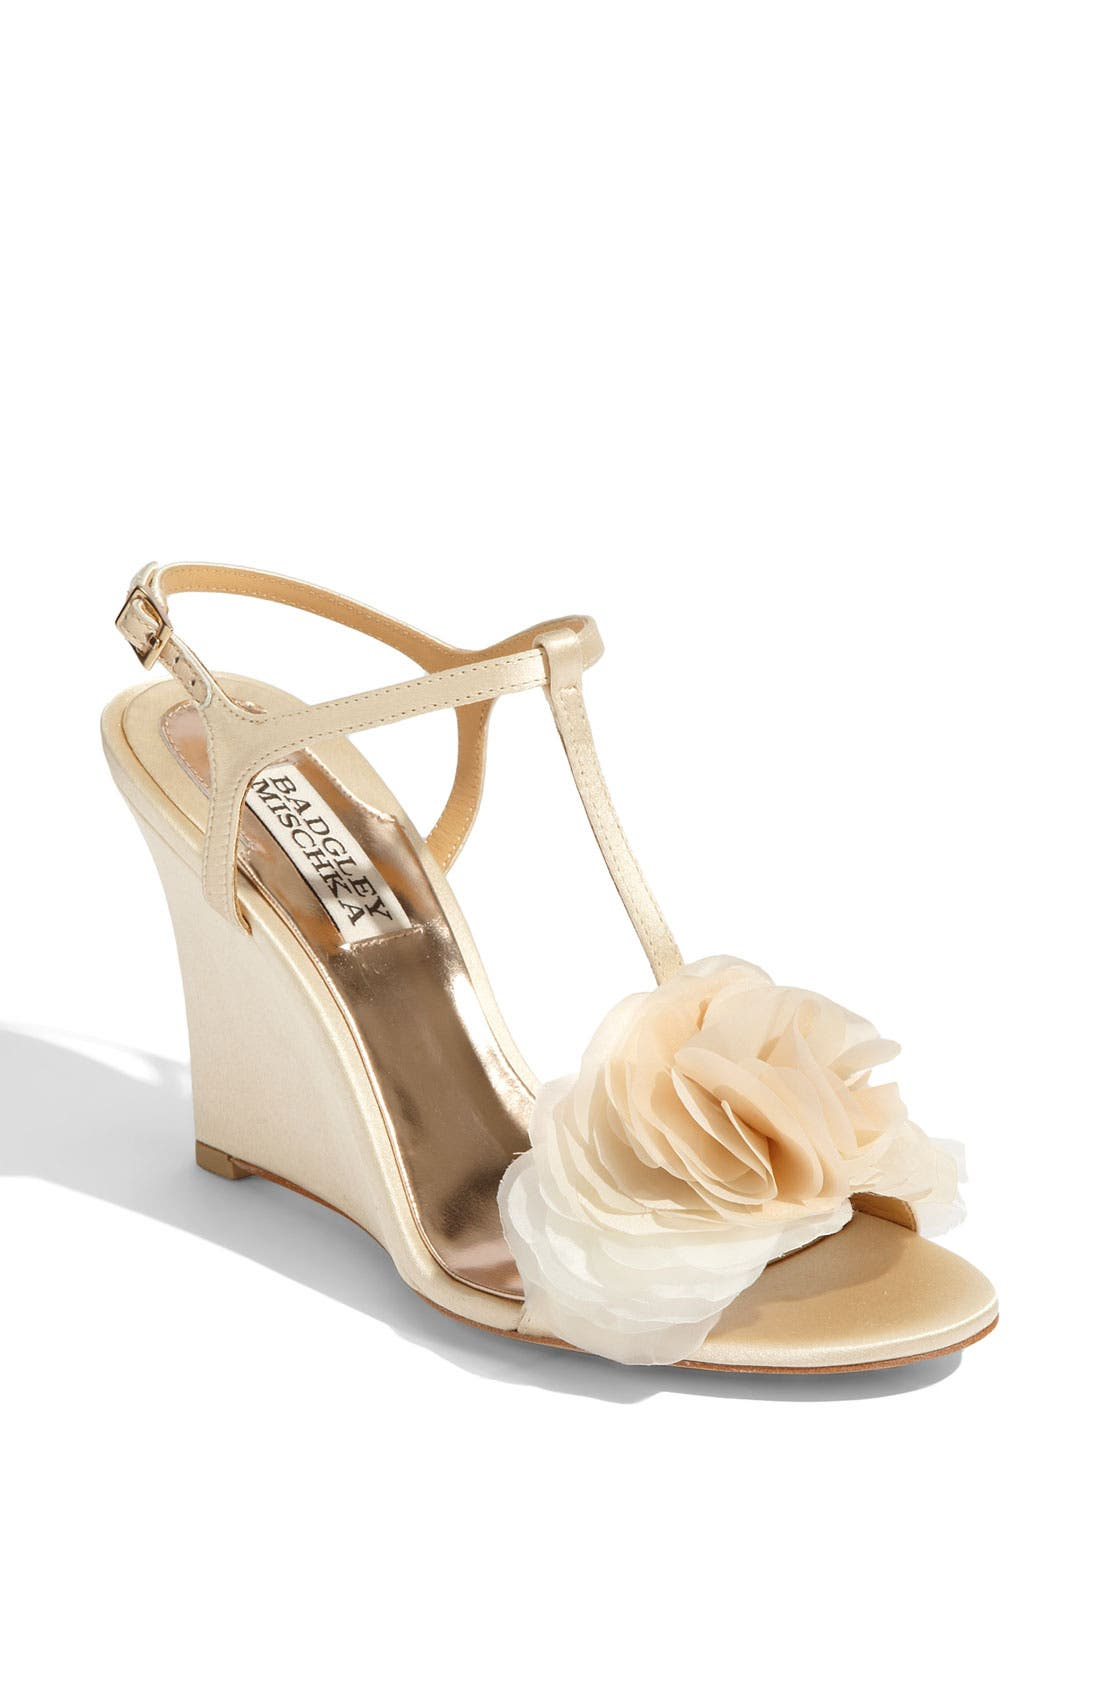 Alternate Image 1 Selected - Badgley Mischka 'Lyndee' Sandal